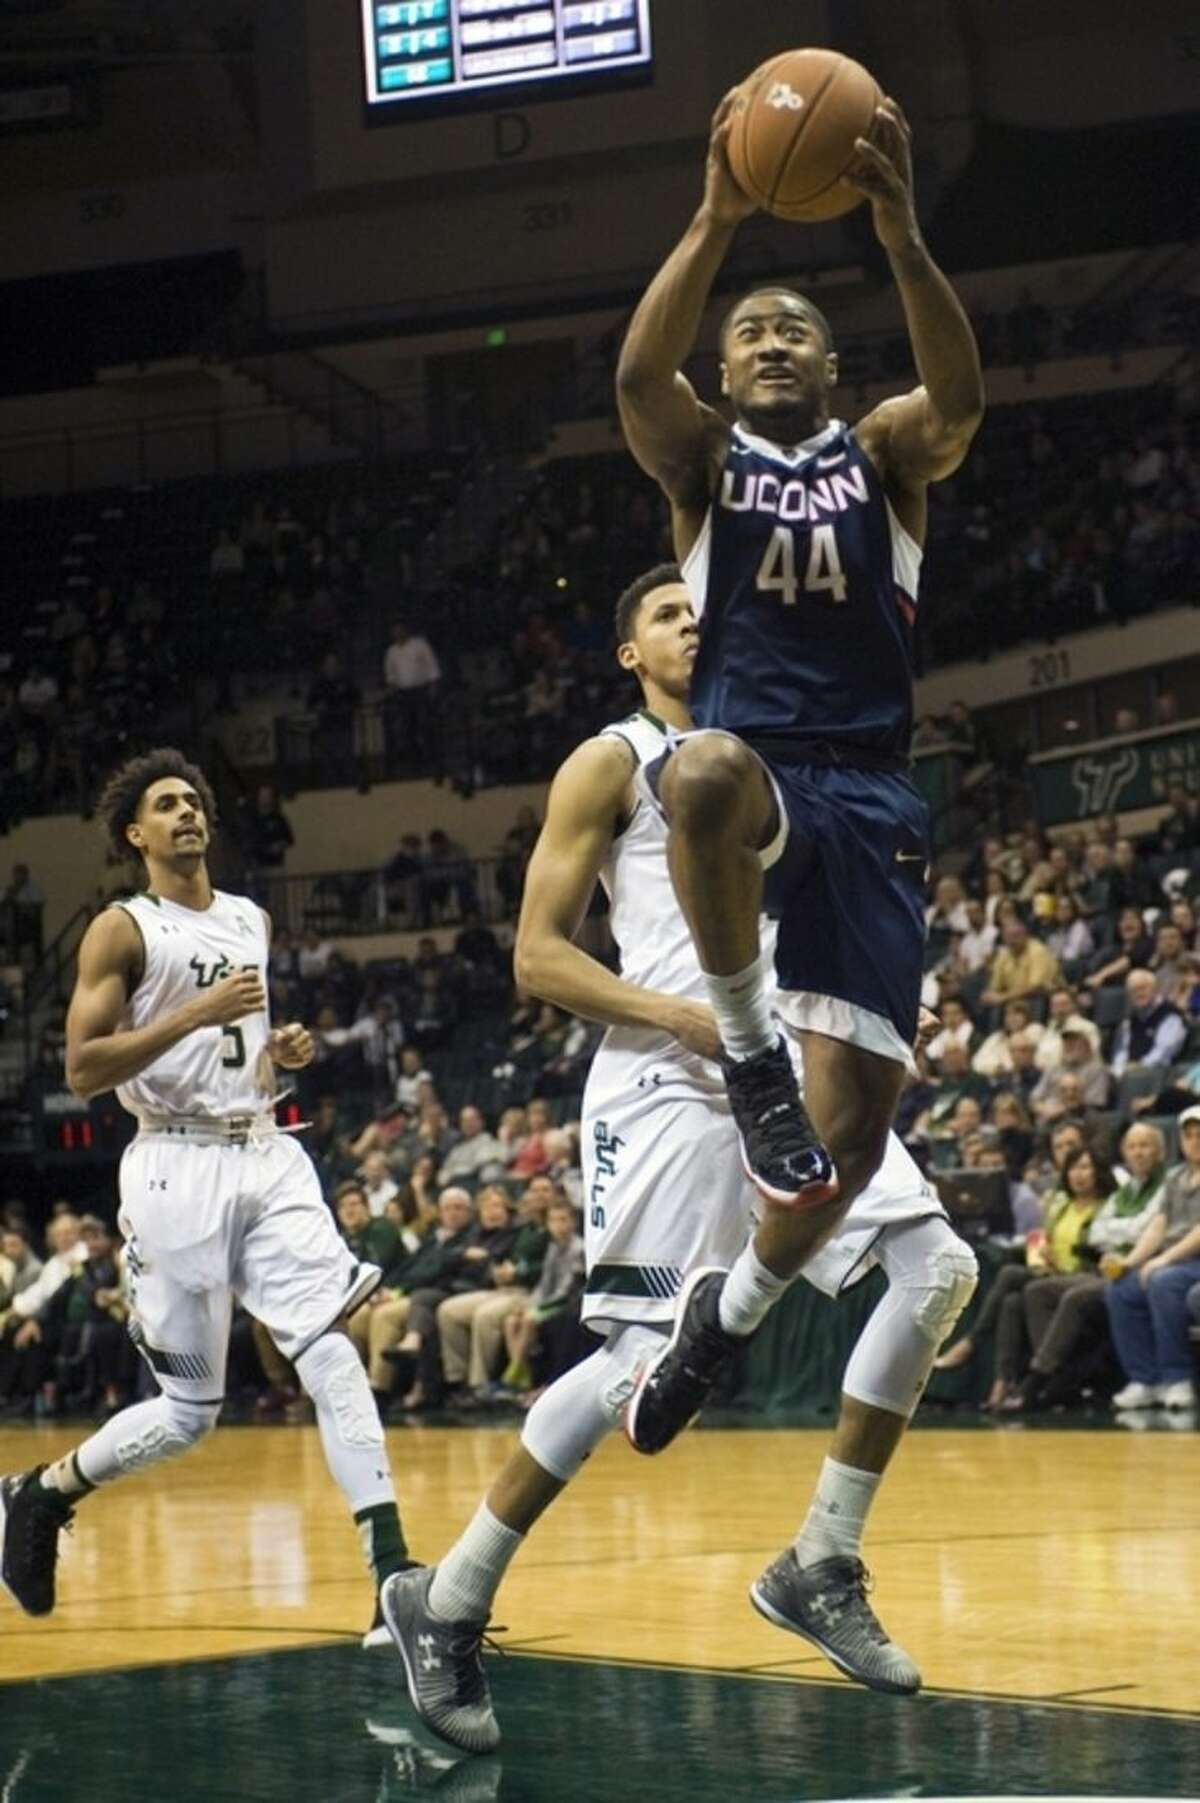 Connecticut's Rodney Purvis (44) scores past South Florida's Nehemias Morillo (5) and Angel Nunez, center, during the first half of an NCAA college basketball game Thursday, Feb. 25, 2016 in Tampa, Fla. (AP Photo/Steve Nesius)